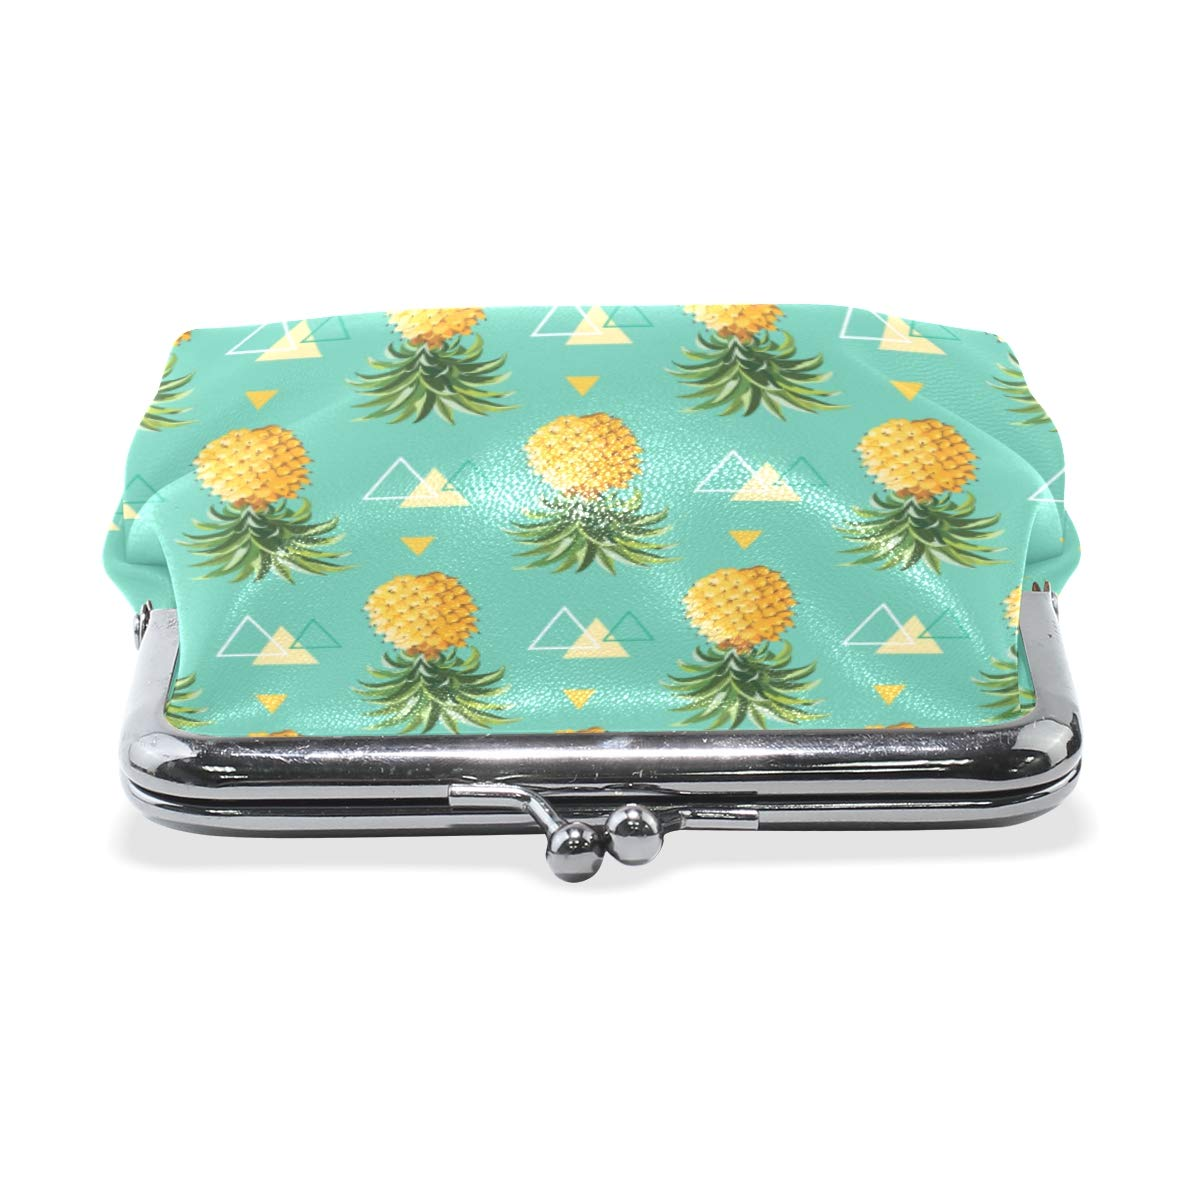 LUPINZ Tropical Pineapple And Plam Leaves Pattern Leather Coin Purse Wallet Snap Closure Clutch